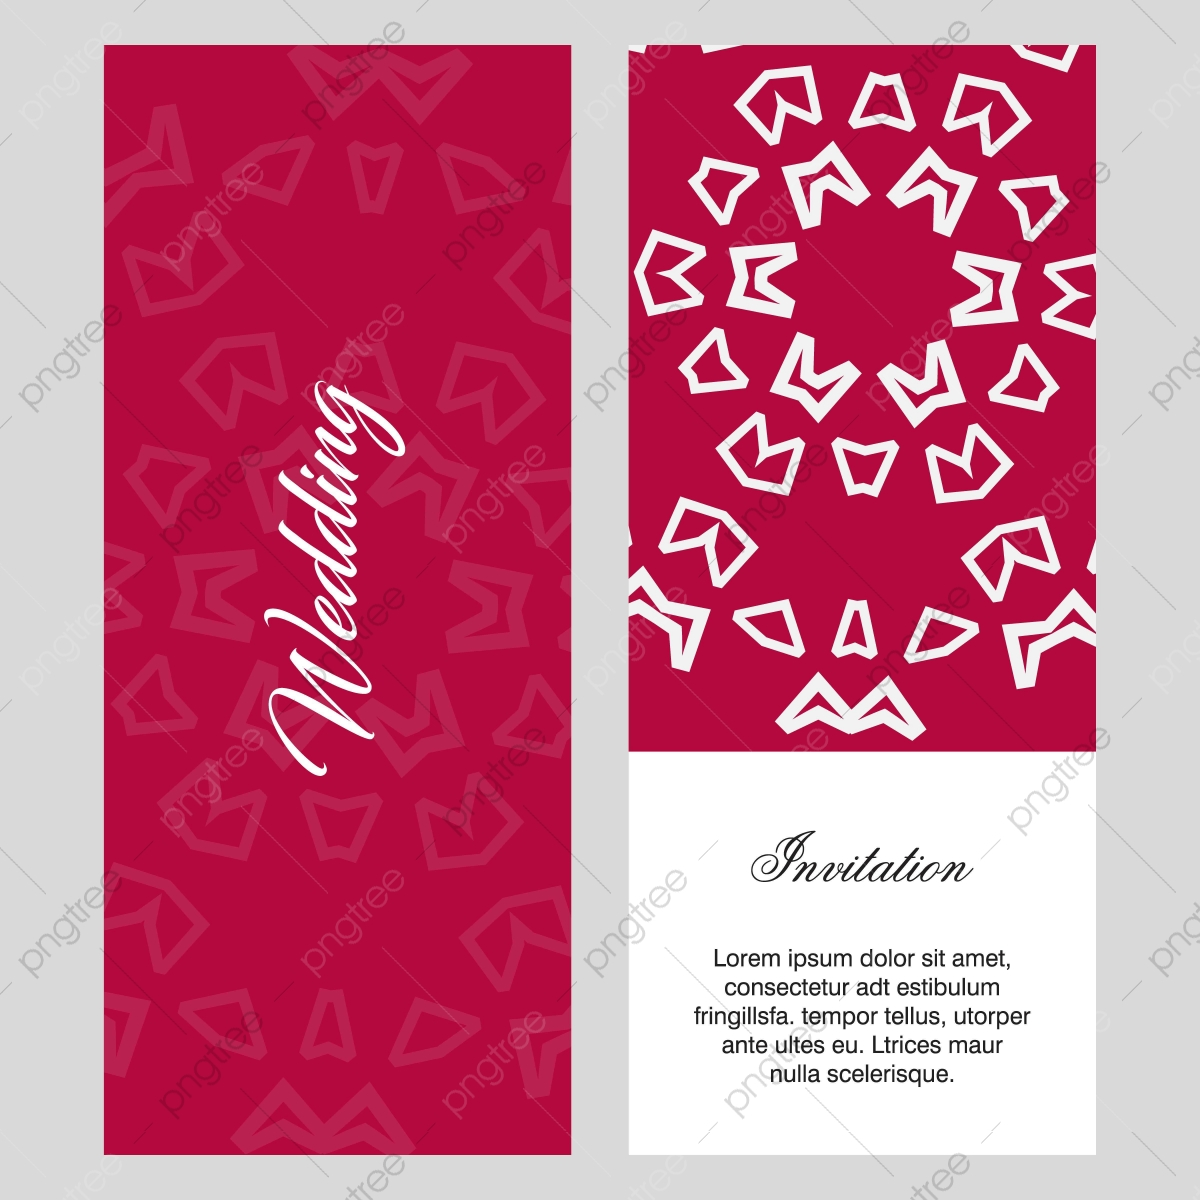 Wedding Ceremony Card With Delegent Design And Typography